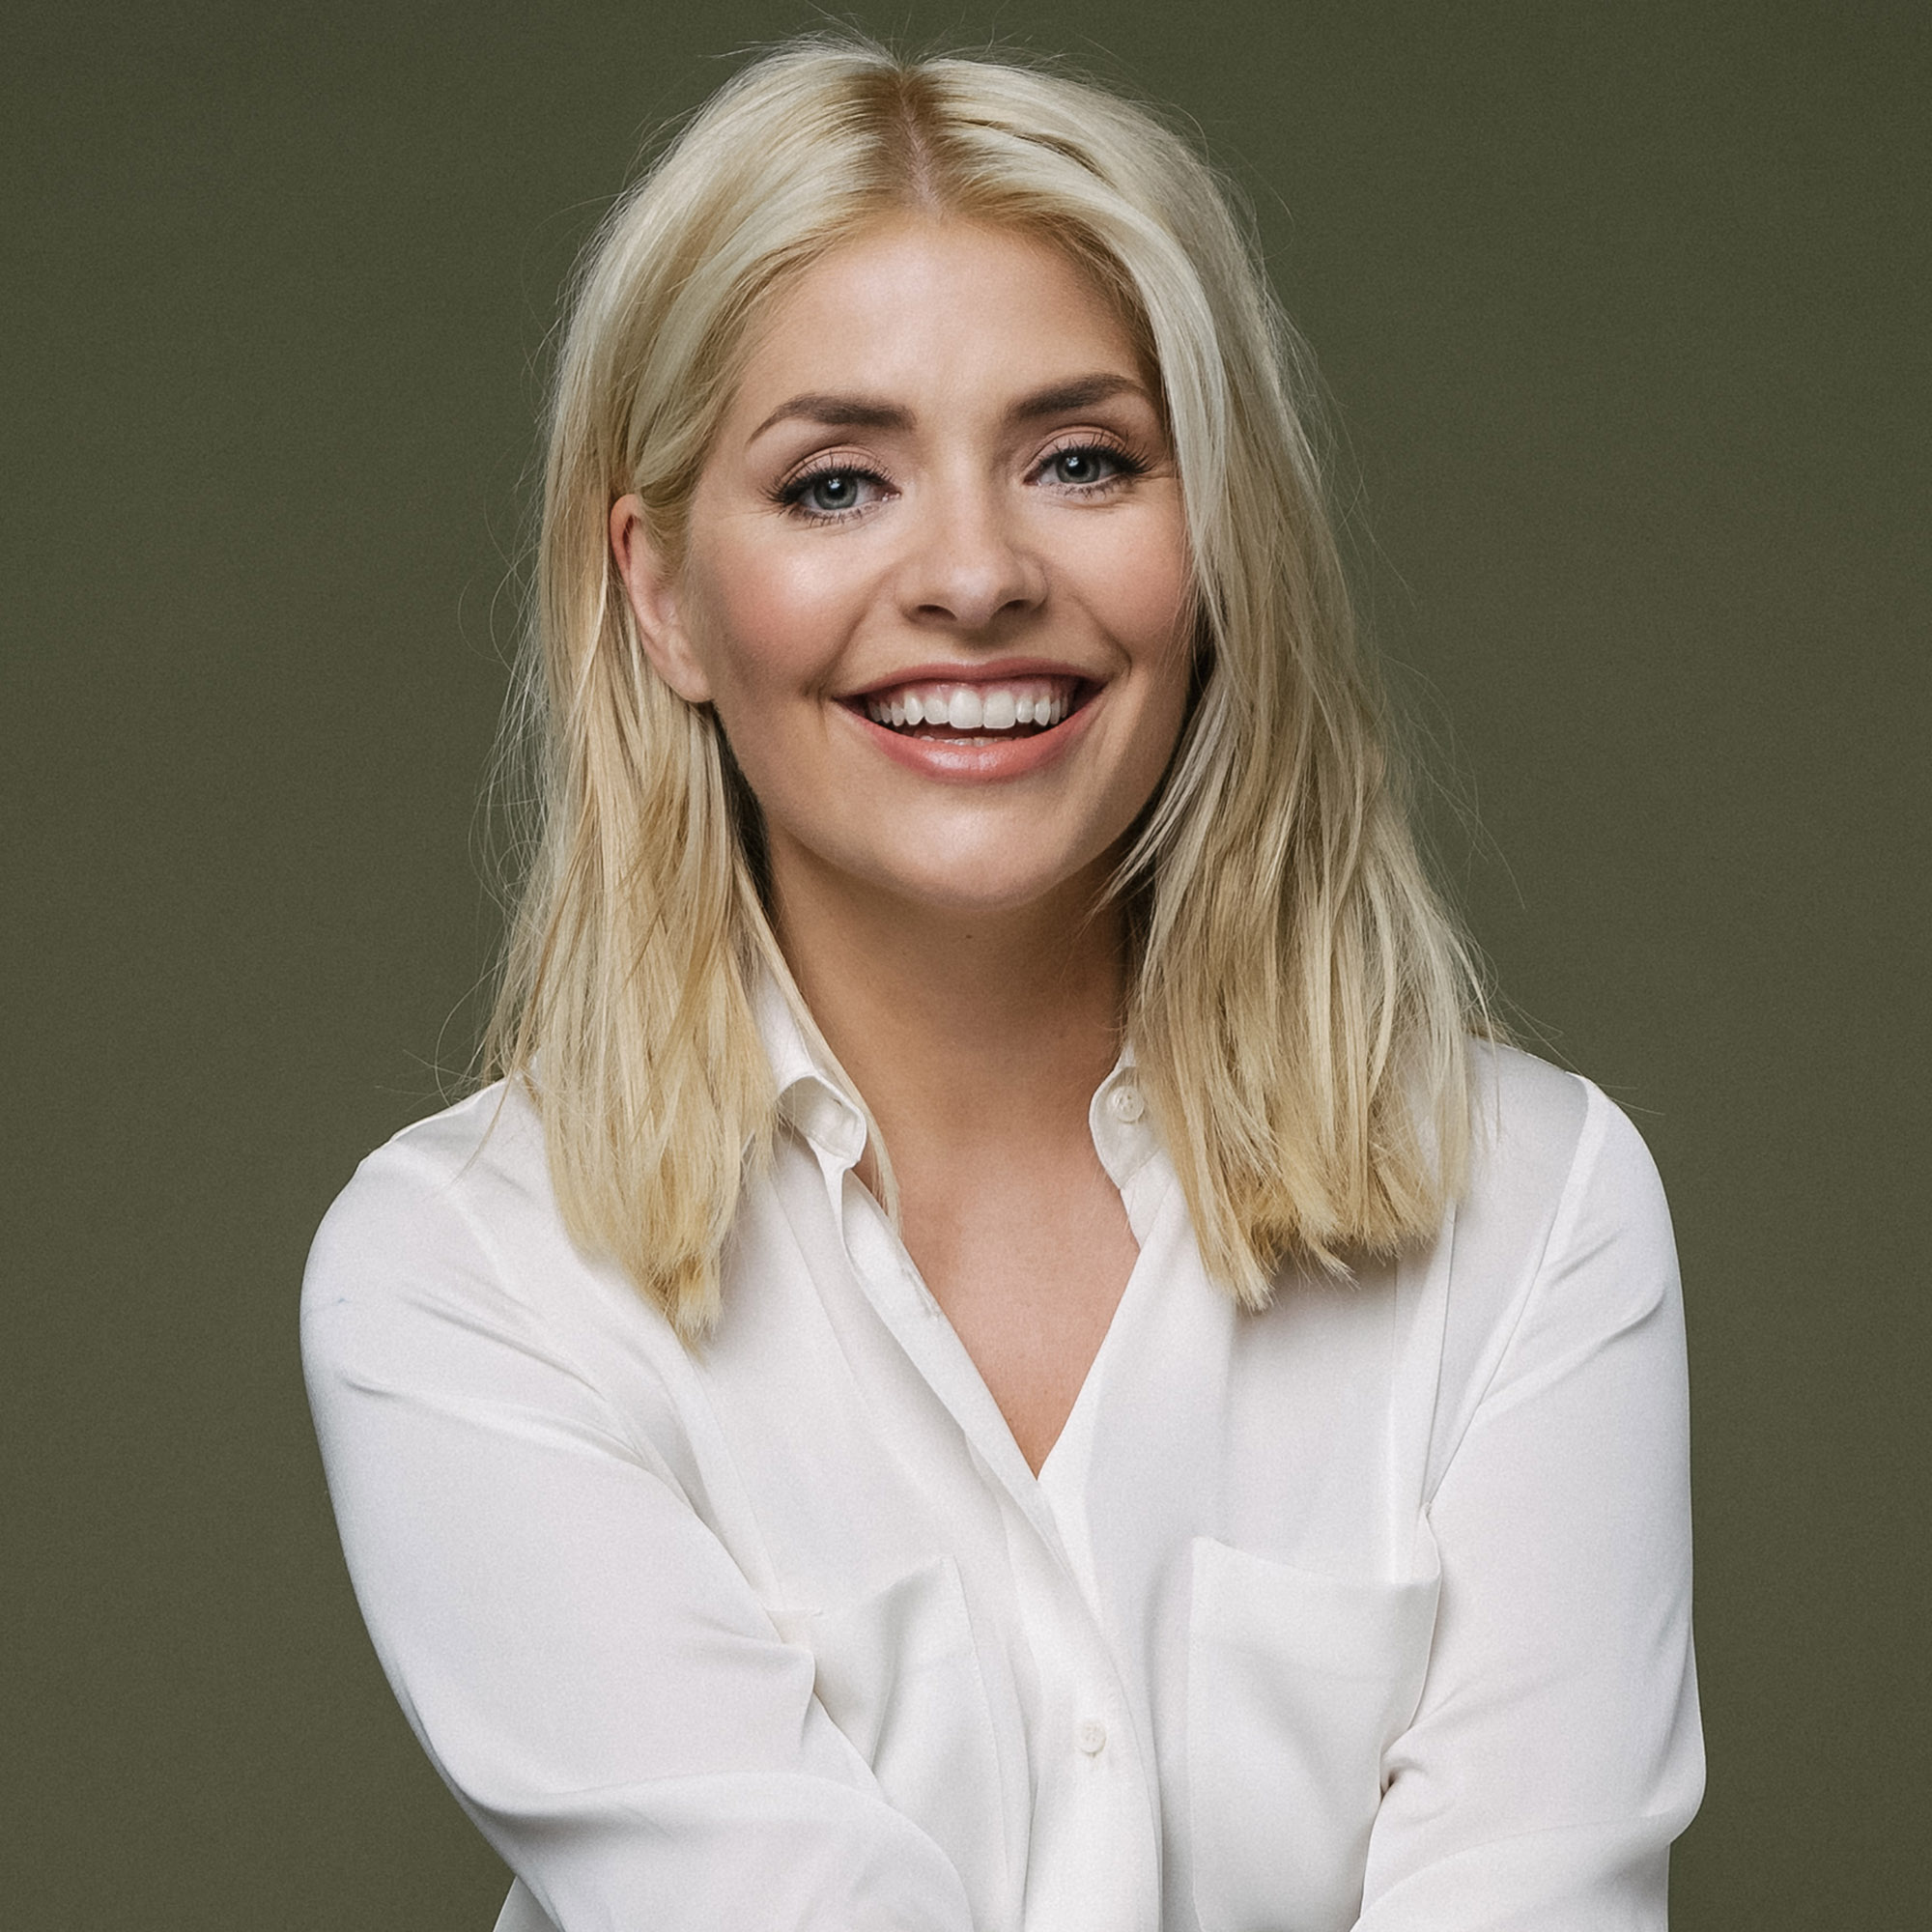 Holly Willoughby S Makeup And Skincare Beauty Buys And Secrets